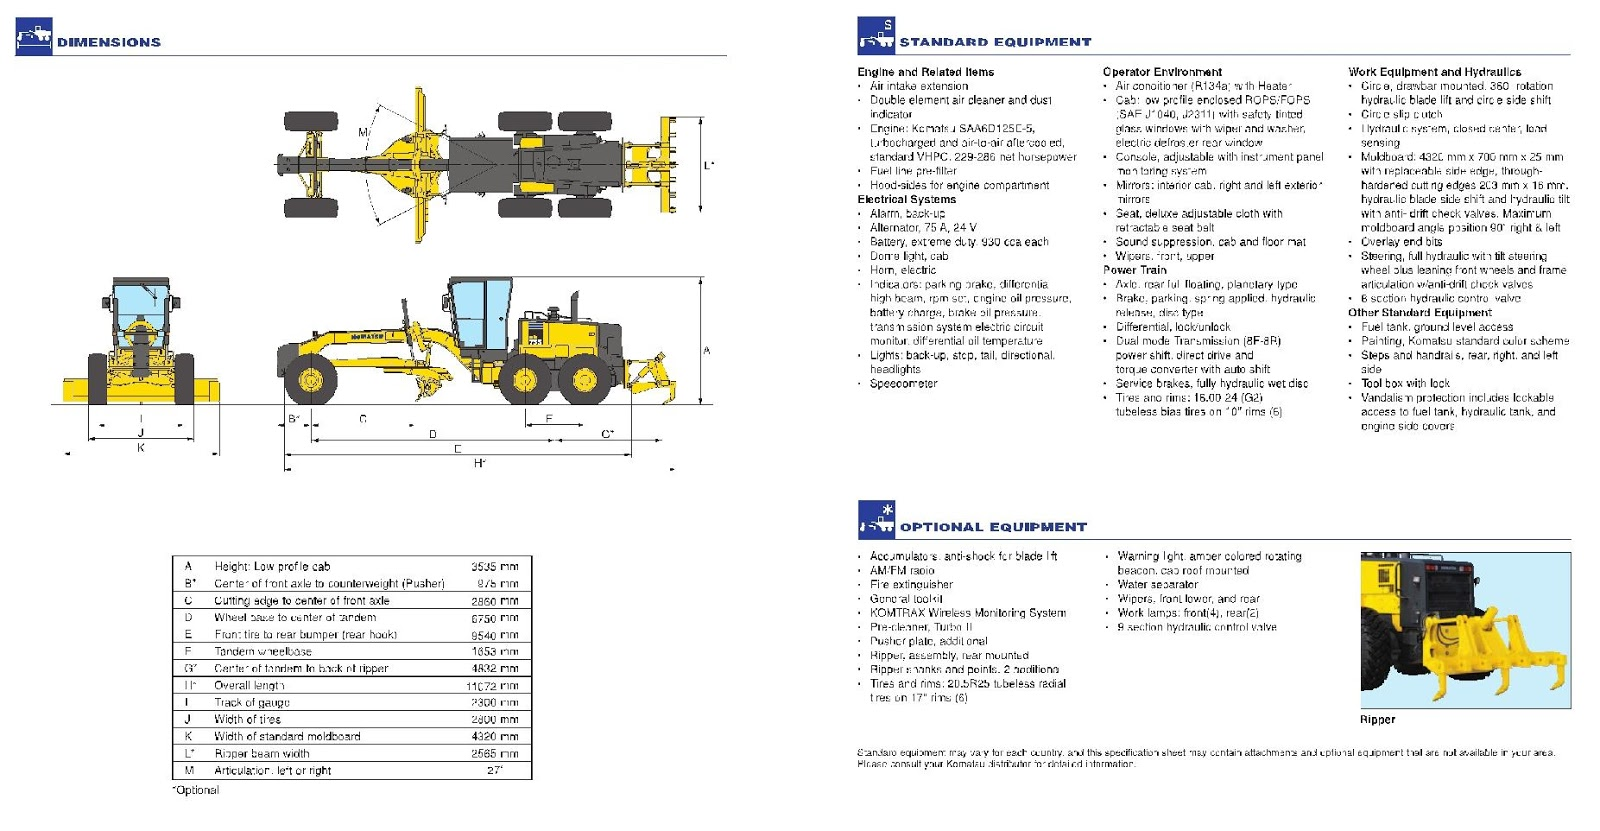 Toyota Electric forklift specifications service manual pdf